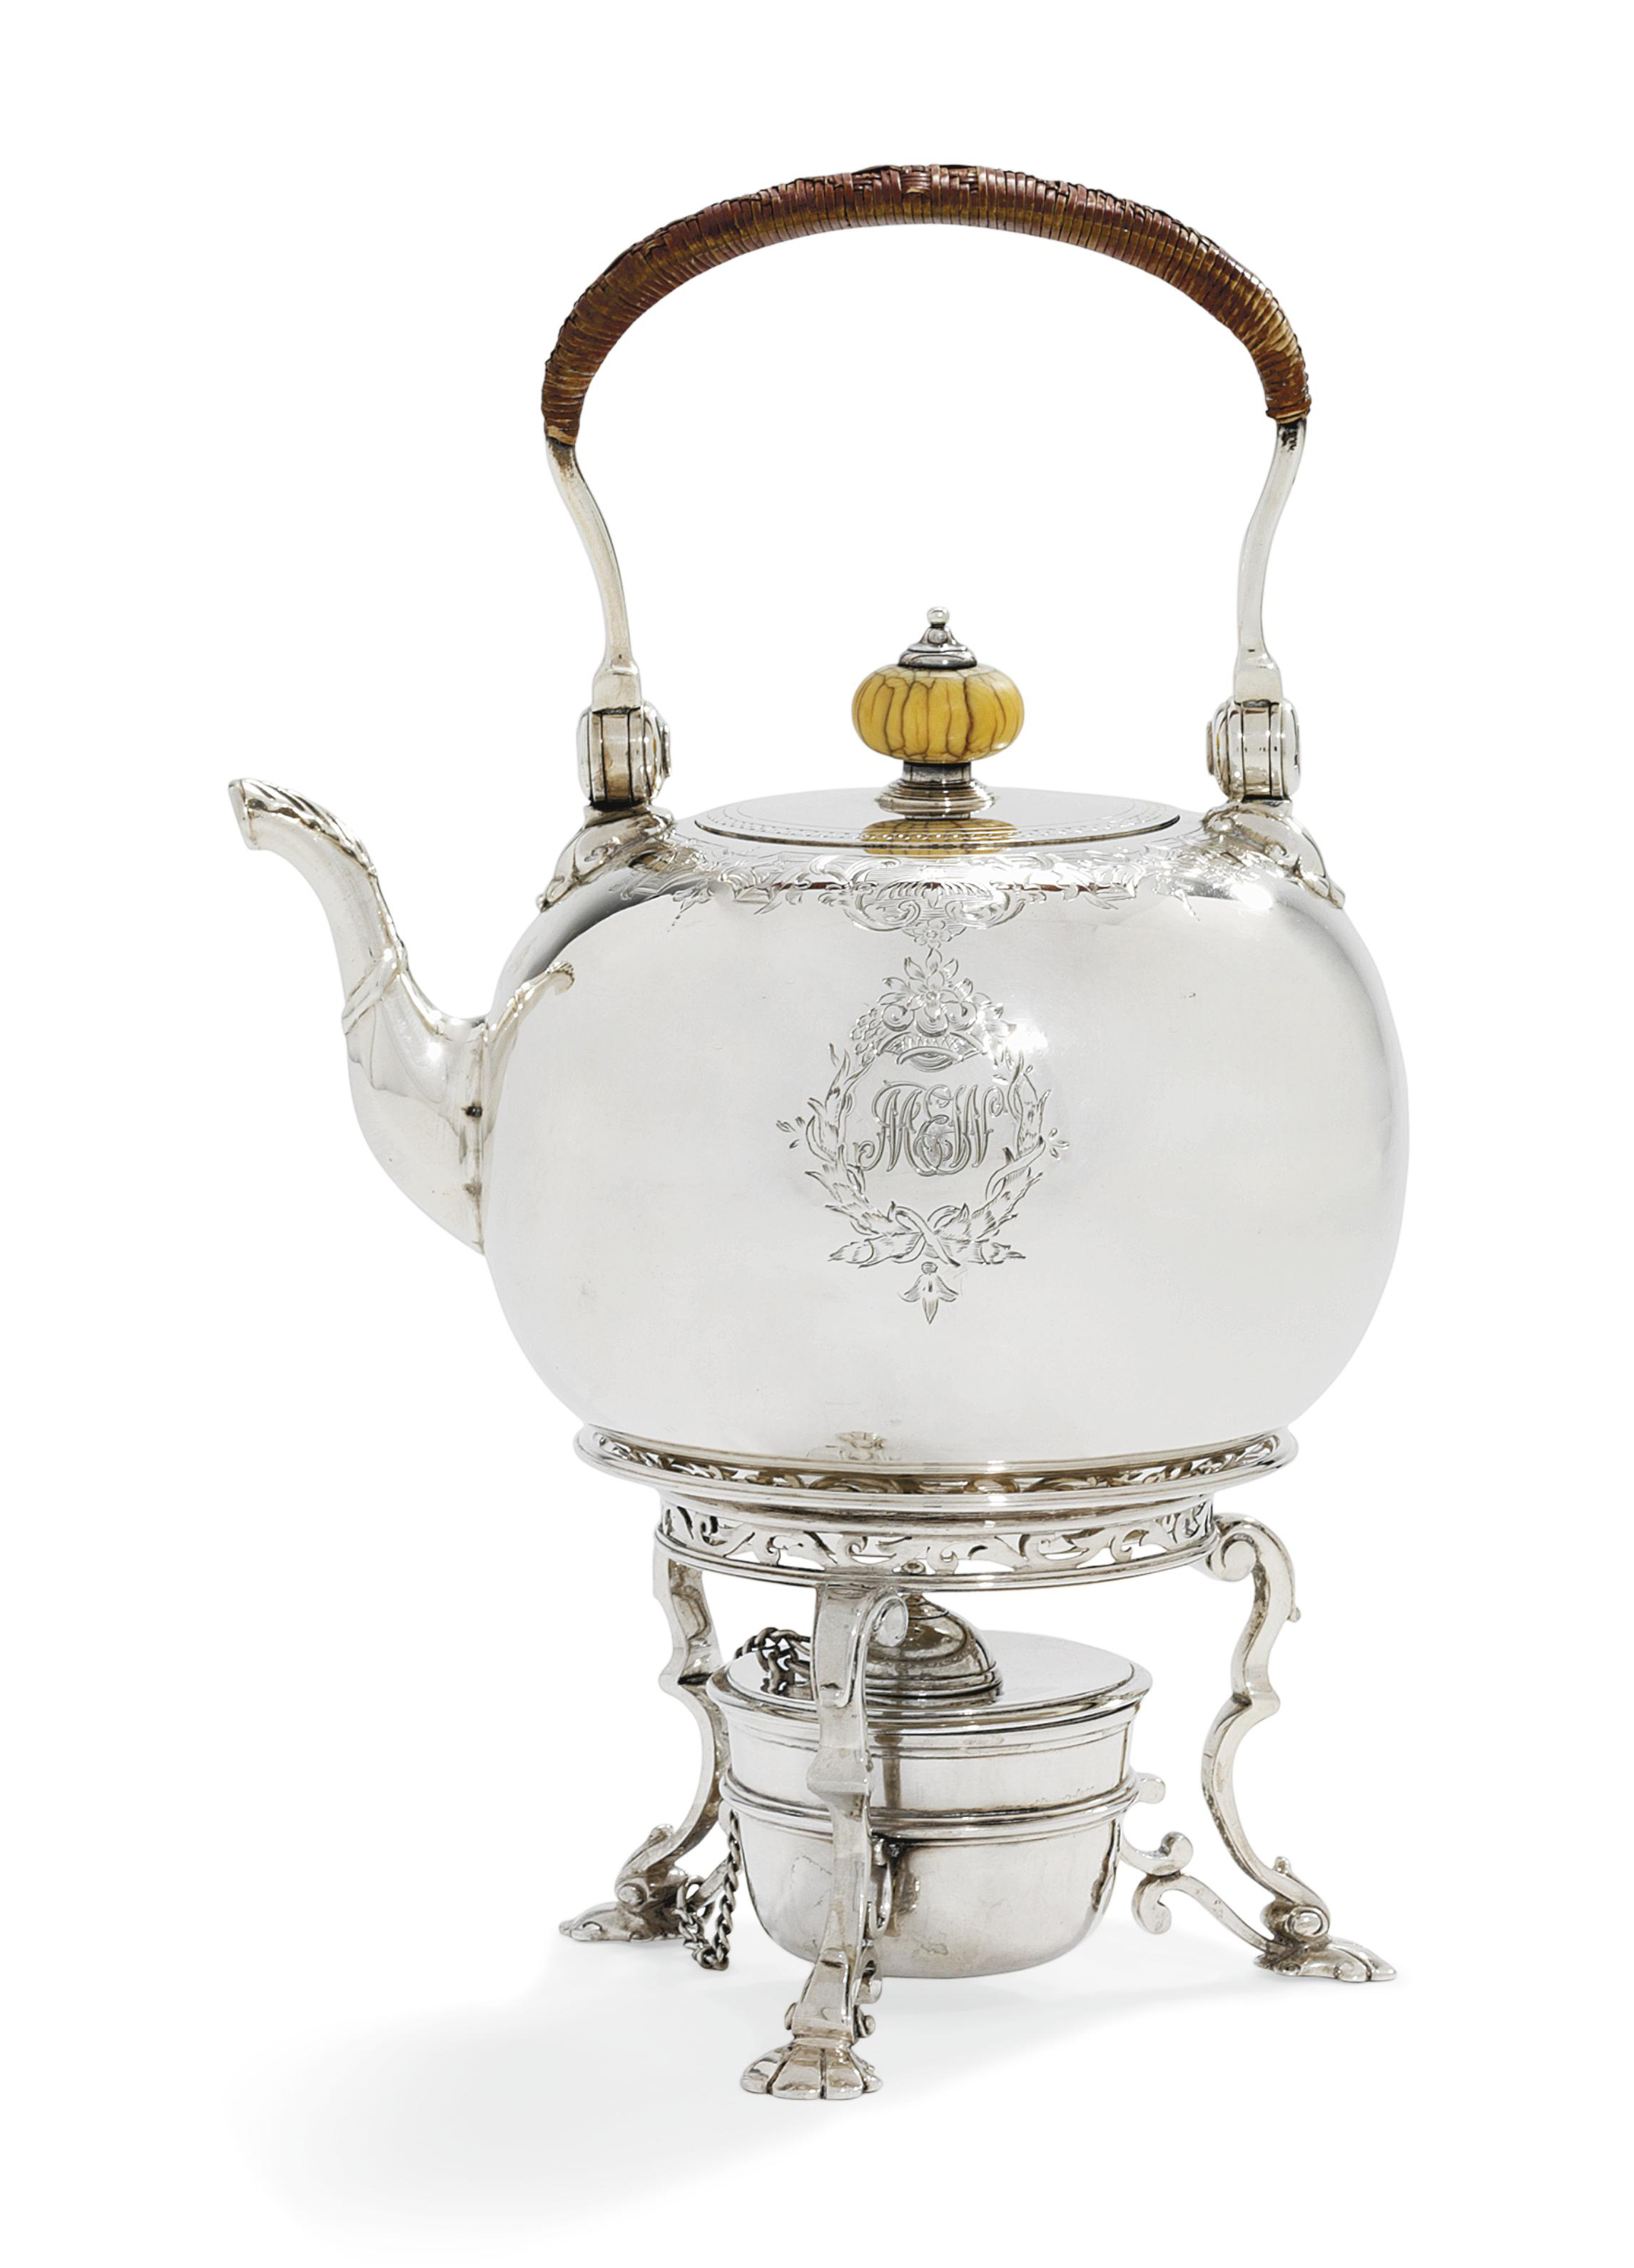 A VICTORIAN SILVER KETTLE, STAND AND LAMP